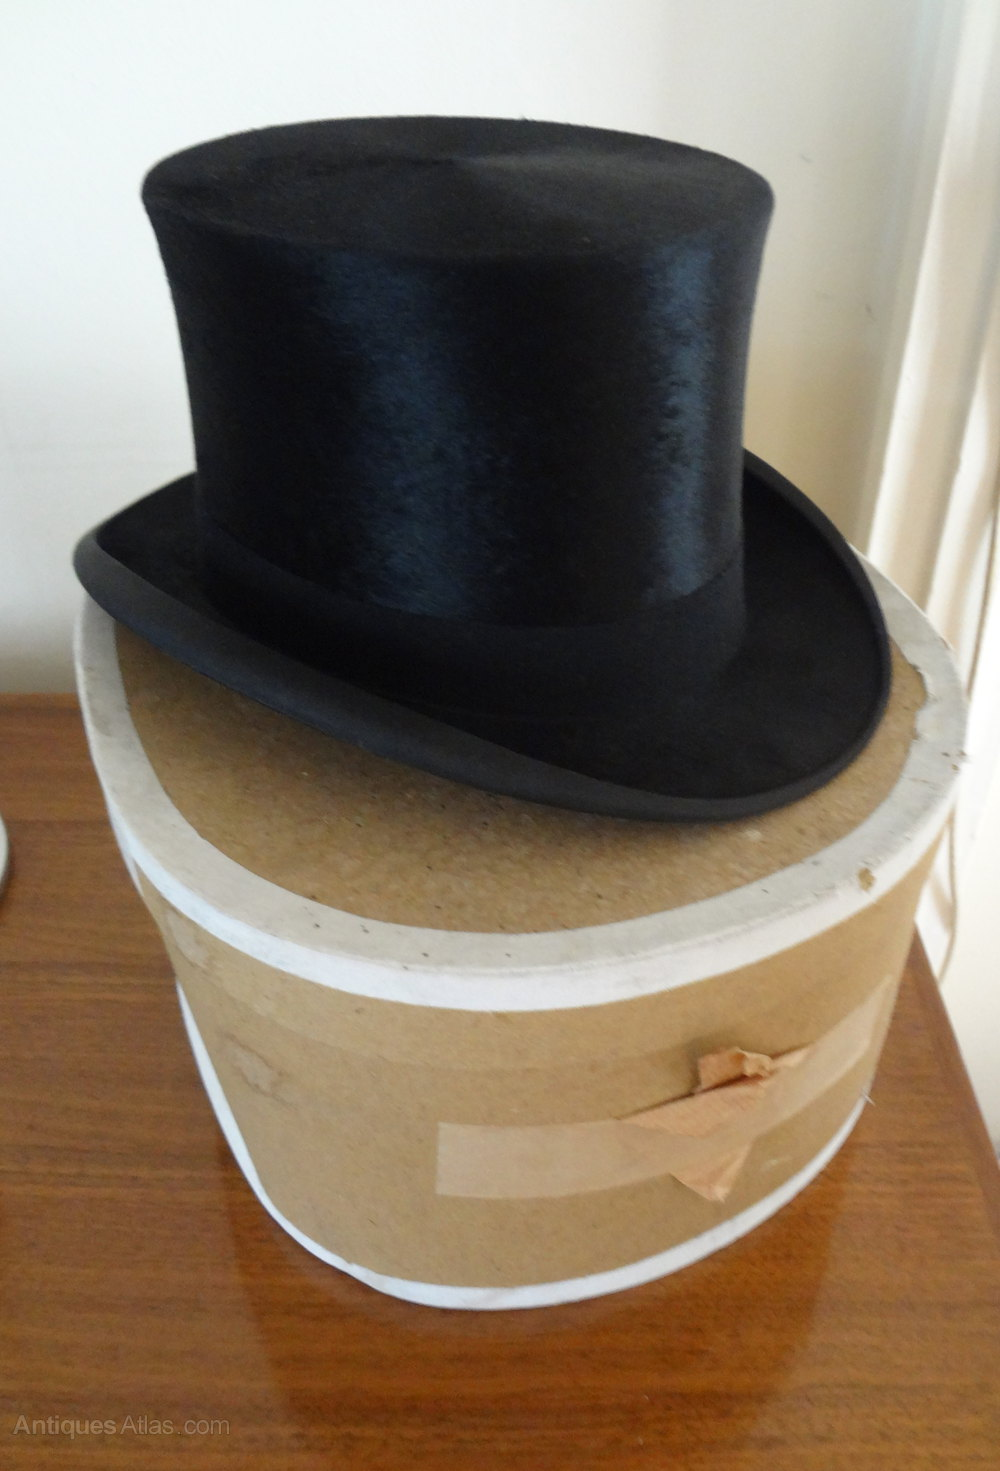 Groningen Vintage Antiques Atlas - Vintage Silk Top Hat & Box